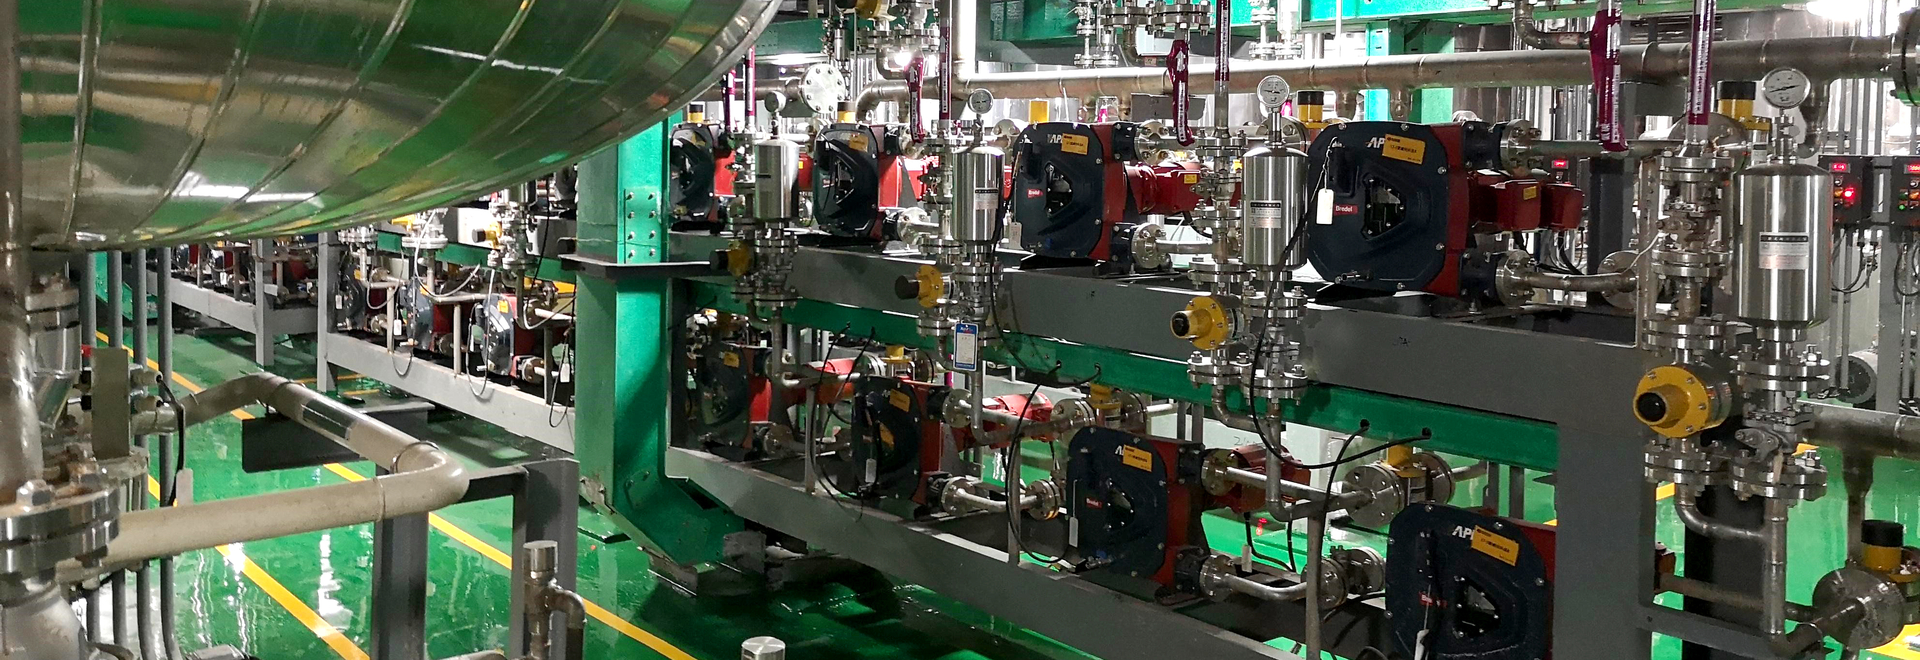 China's largest lithium battery materials producer opts for Bredel APEX pumps